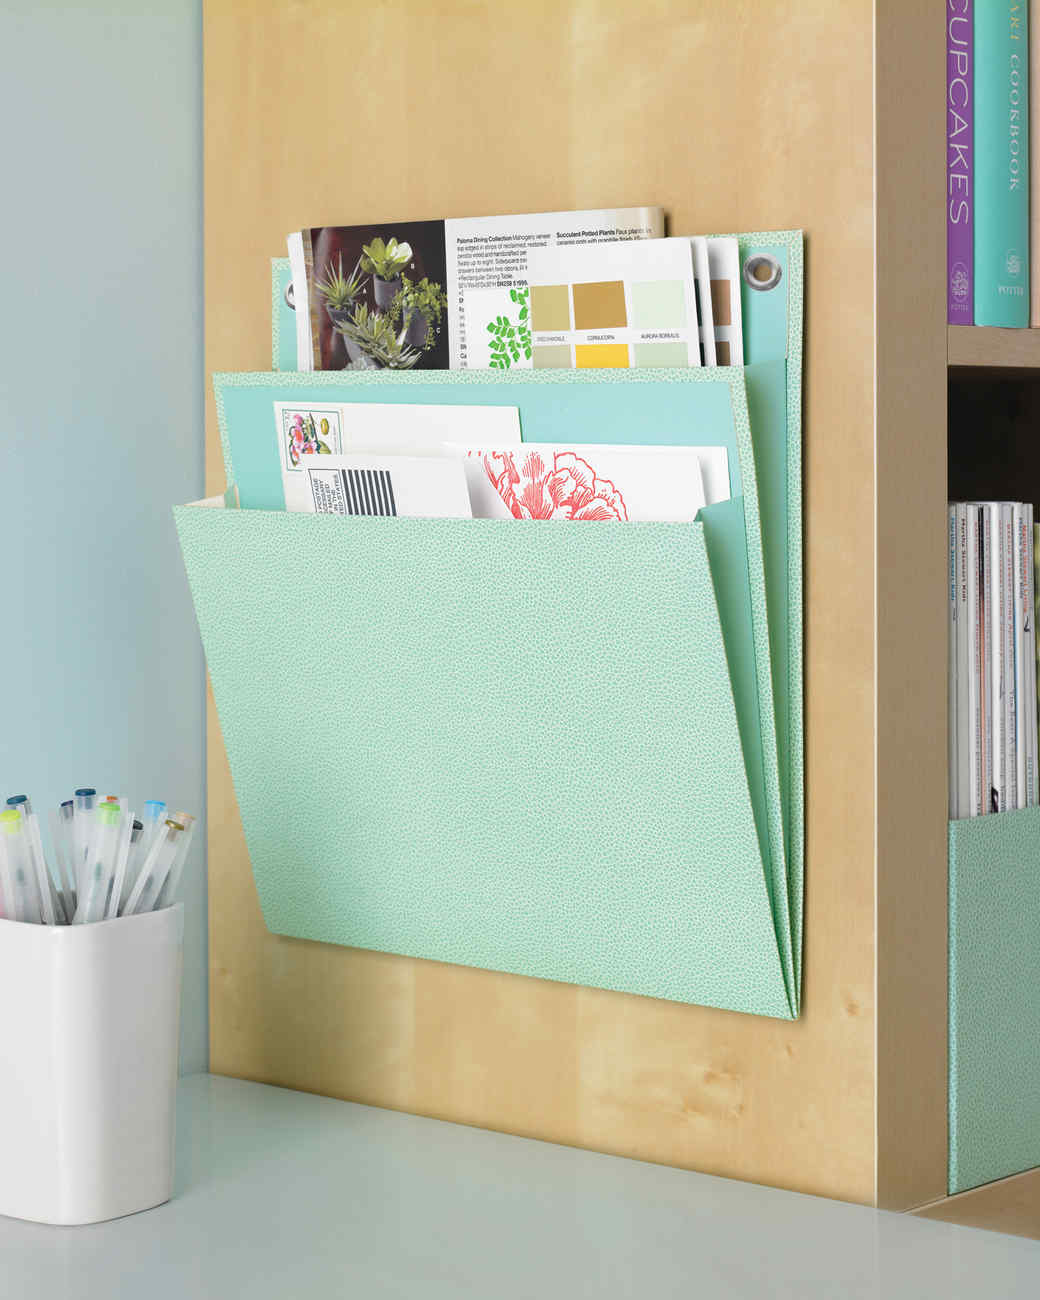 Merveilleux Martha Stewart Home Office With Avery Exclusively At Staples | Martha  Stewart